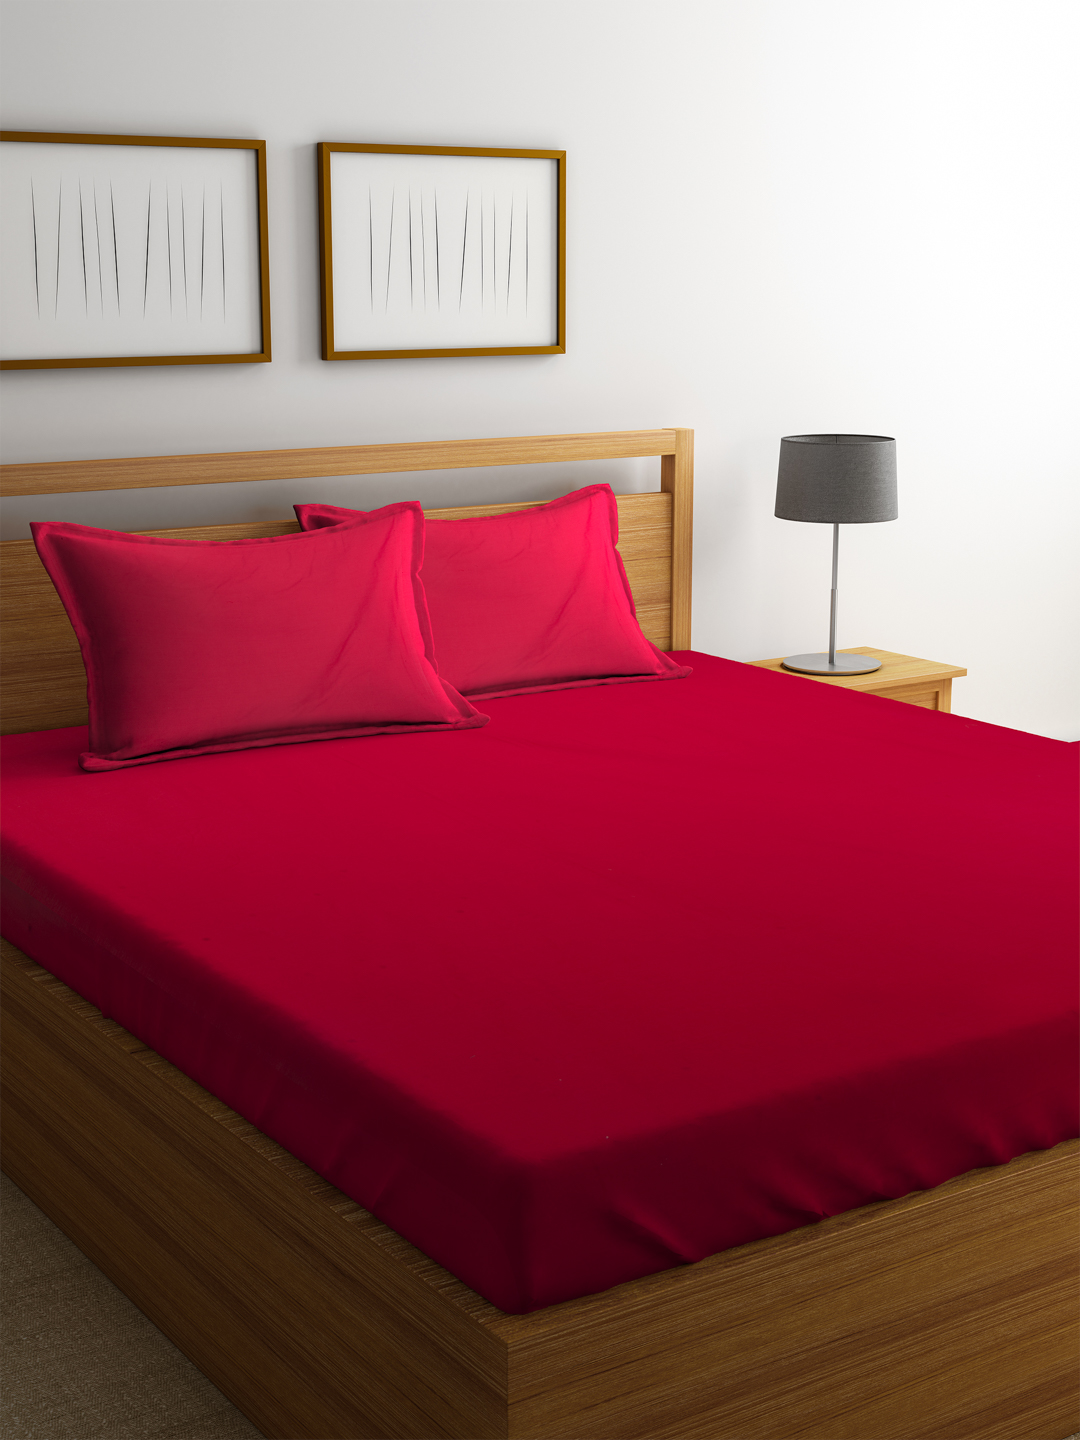 Portico Supercale Bedsheet Red Cotton Double Bed Sheets in Red Colour by Portico